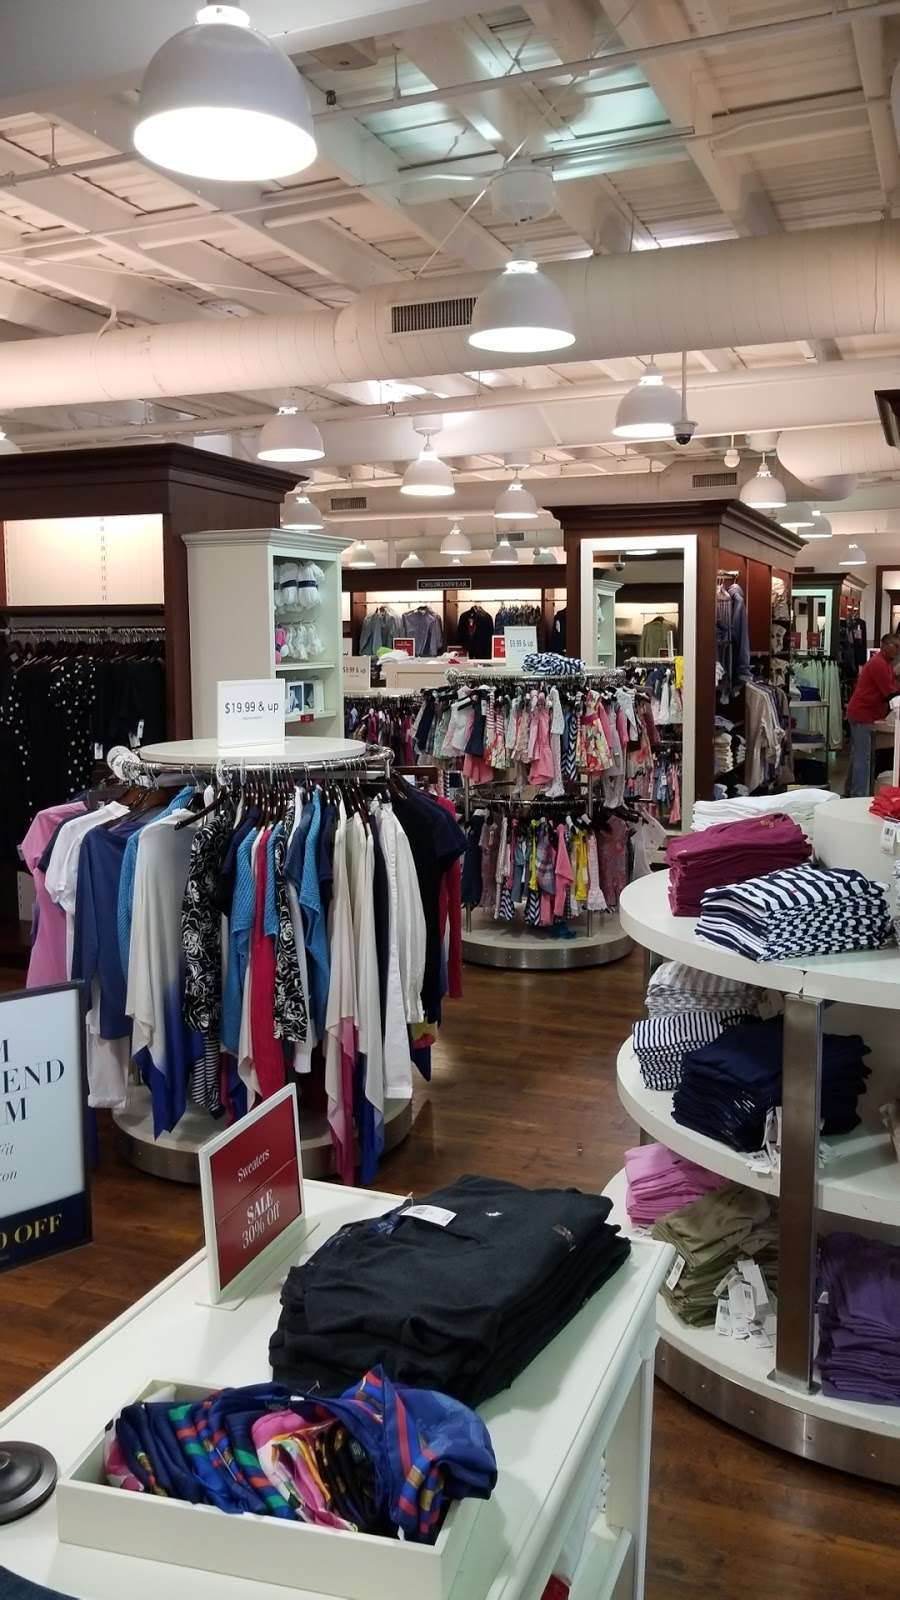 Polo Ralph Lauren Factory Store - clothing store    Photo 3 of 10   Address: 203 Outlet Center Dr, Queenstown, MD 21658, USA   Phone: (410) 827-5039